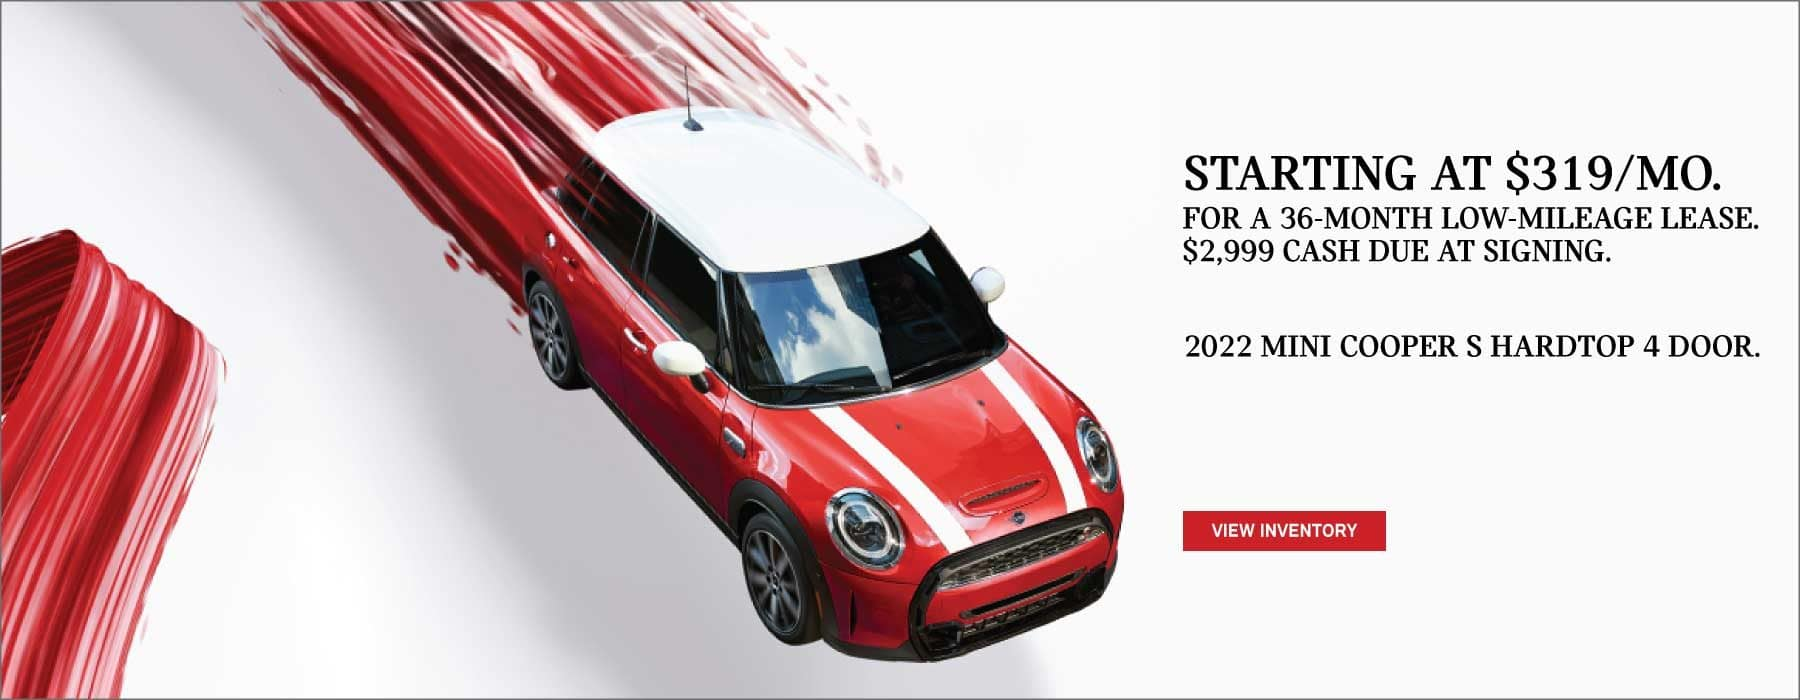 Starting at $319/mo. for a 36 month low-mileage lease. $2,999 cash sue at signing. 2022 MINI Cooper S Hardtop 4 door.